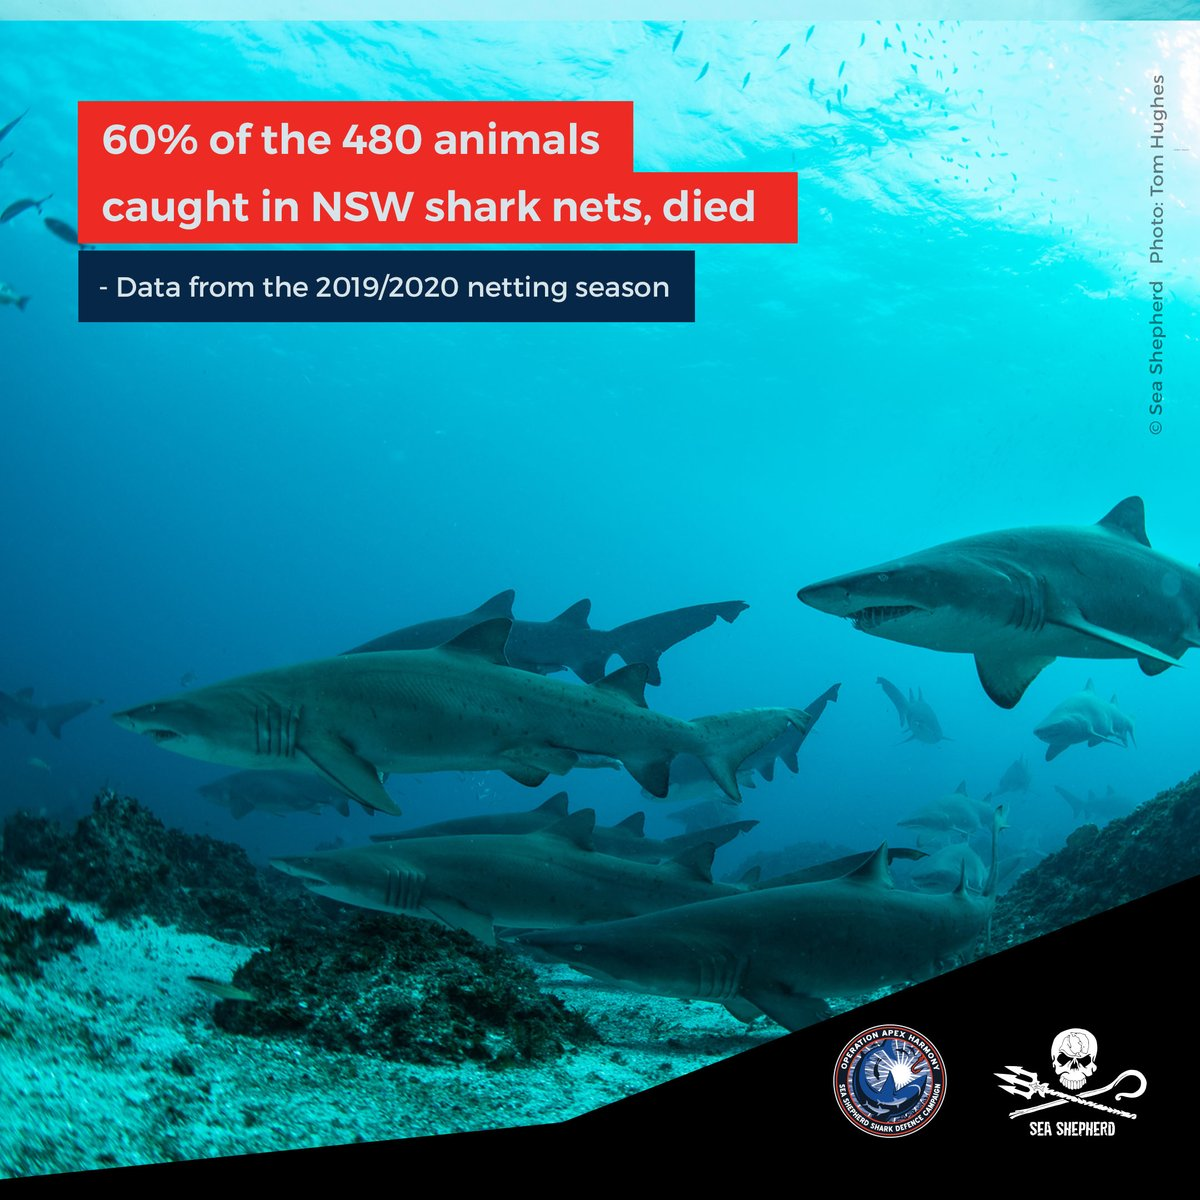 Dolphins, turtles & endangered grey nurse sharks are just a few of the species that were killed by NSWs shark netting program between September 2019 and April this year.  Of the 480 animals trapped last season, only 50 were targeted species. Learn more http://ow.ly/Kp9Y50APTImpic.twitter.com/6ZDFEqJ2hV